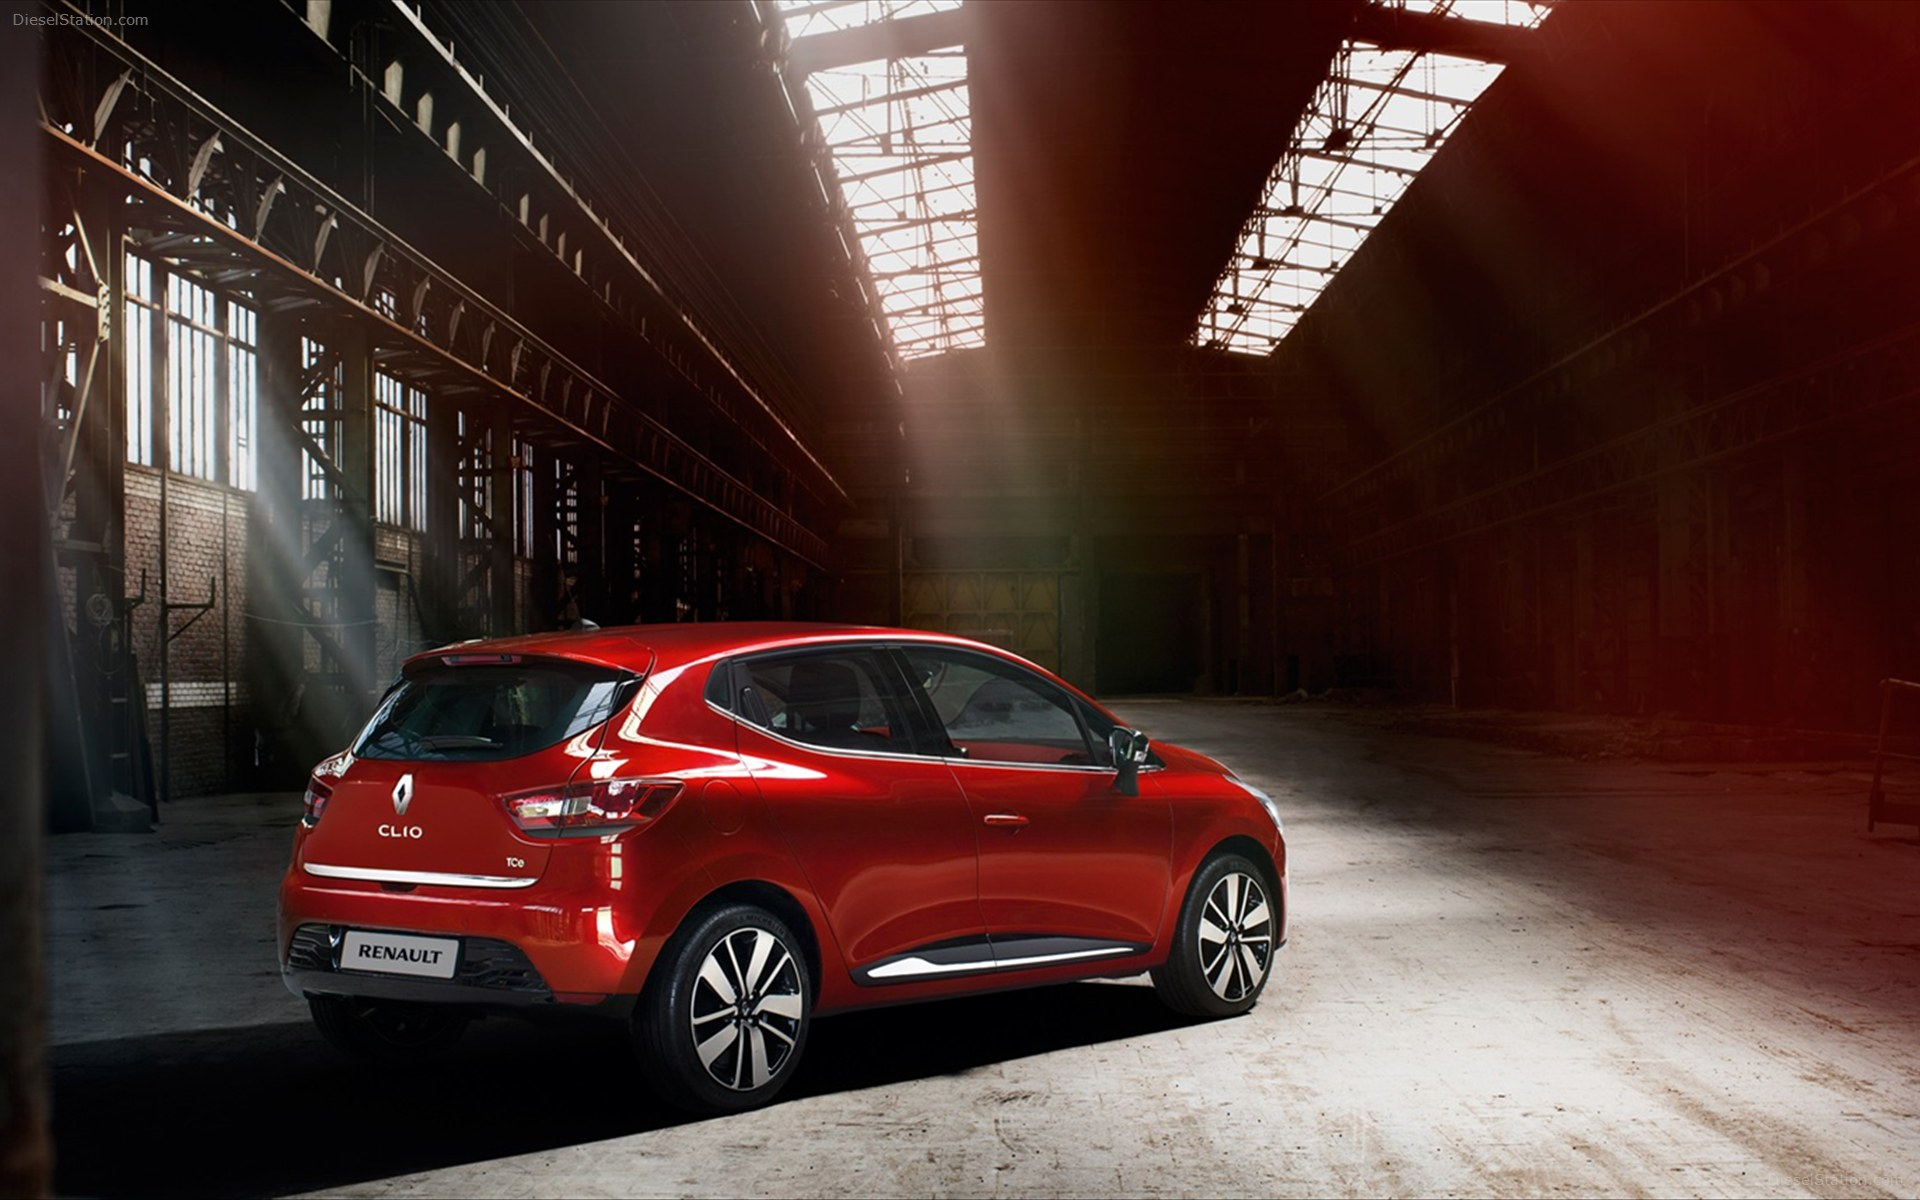 Renault-Clio-2013-images-widescreen-17